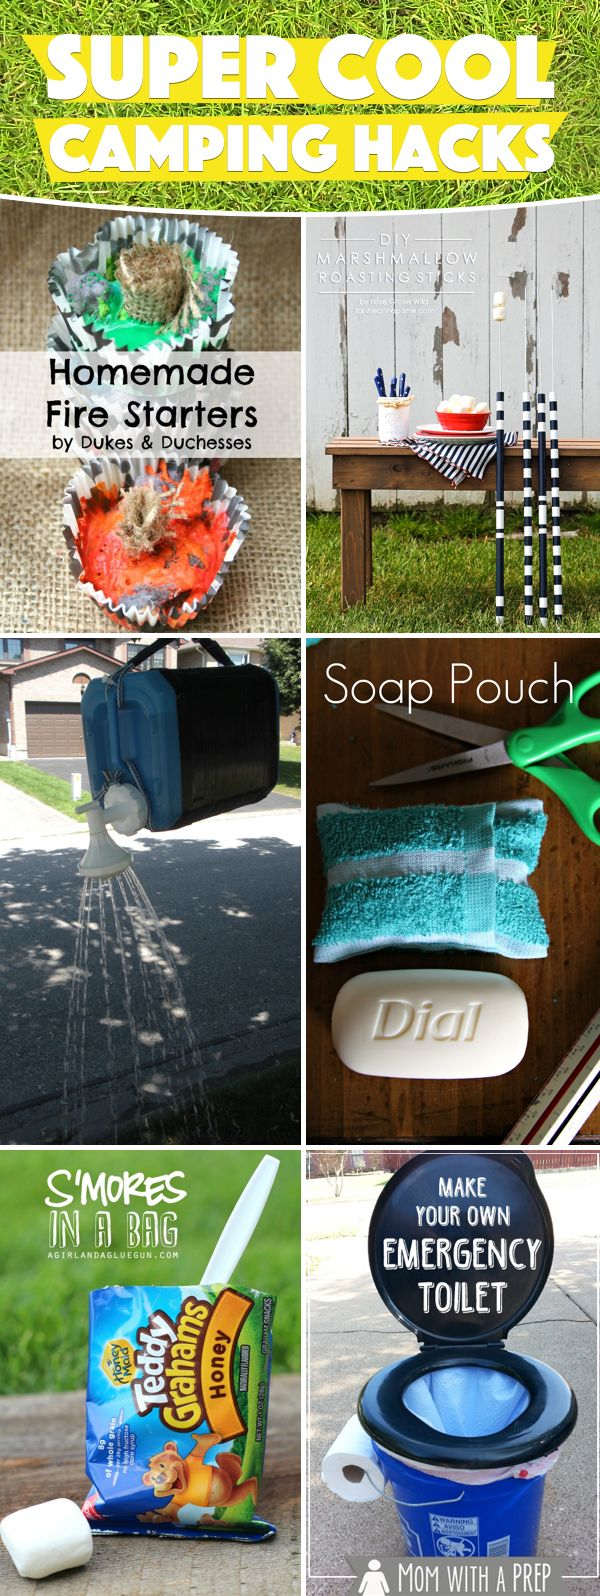 20 Super Cool Camping Hacks Making Your Trips Hassle-Free and Fun!